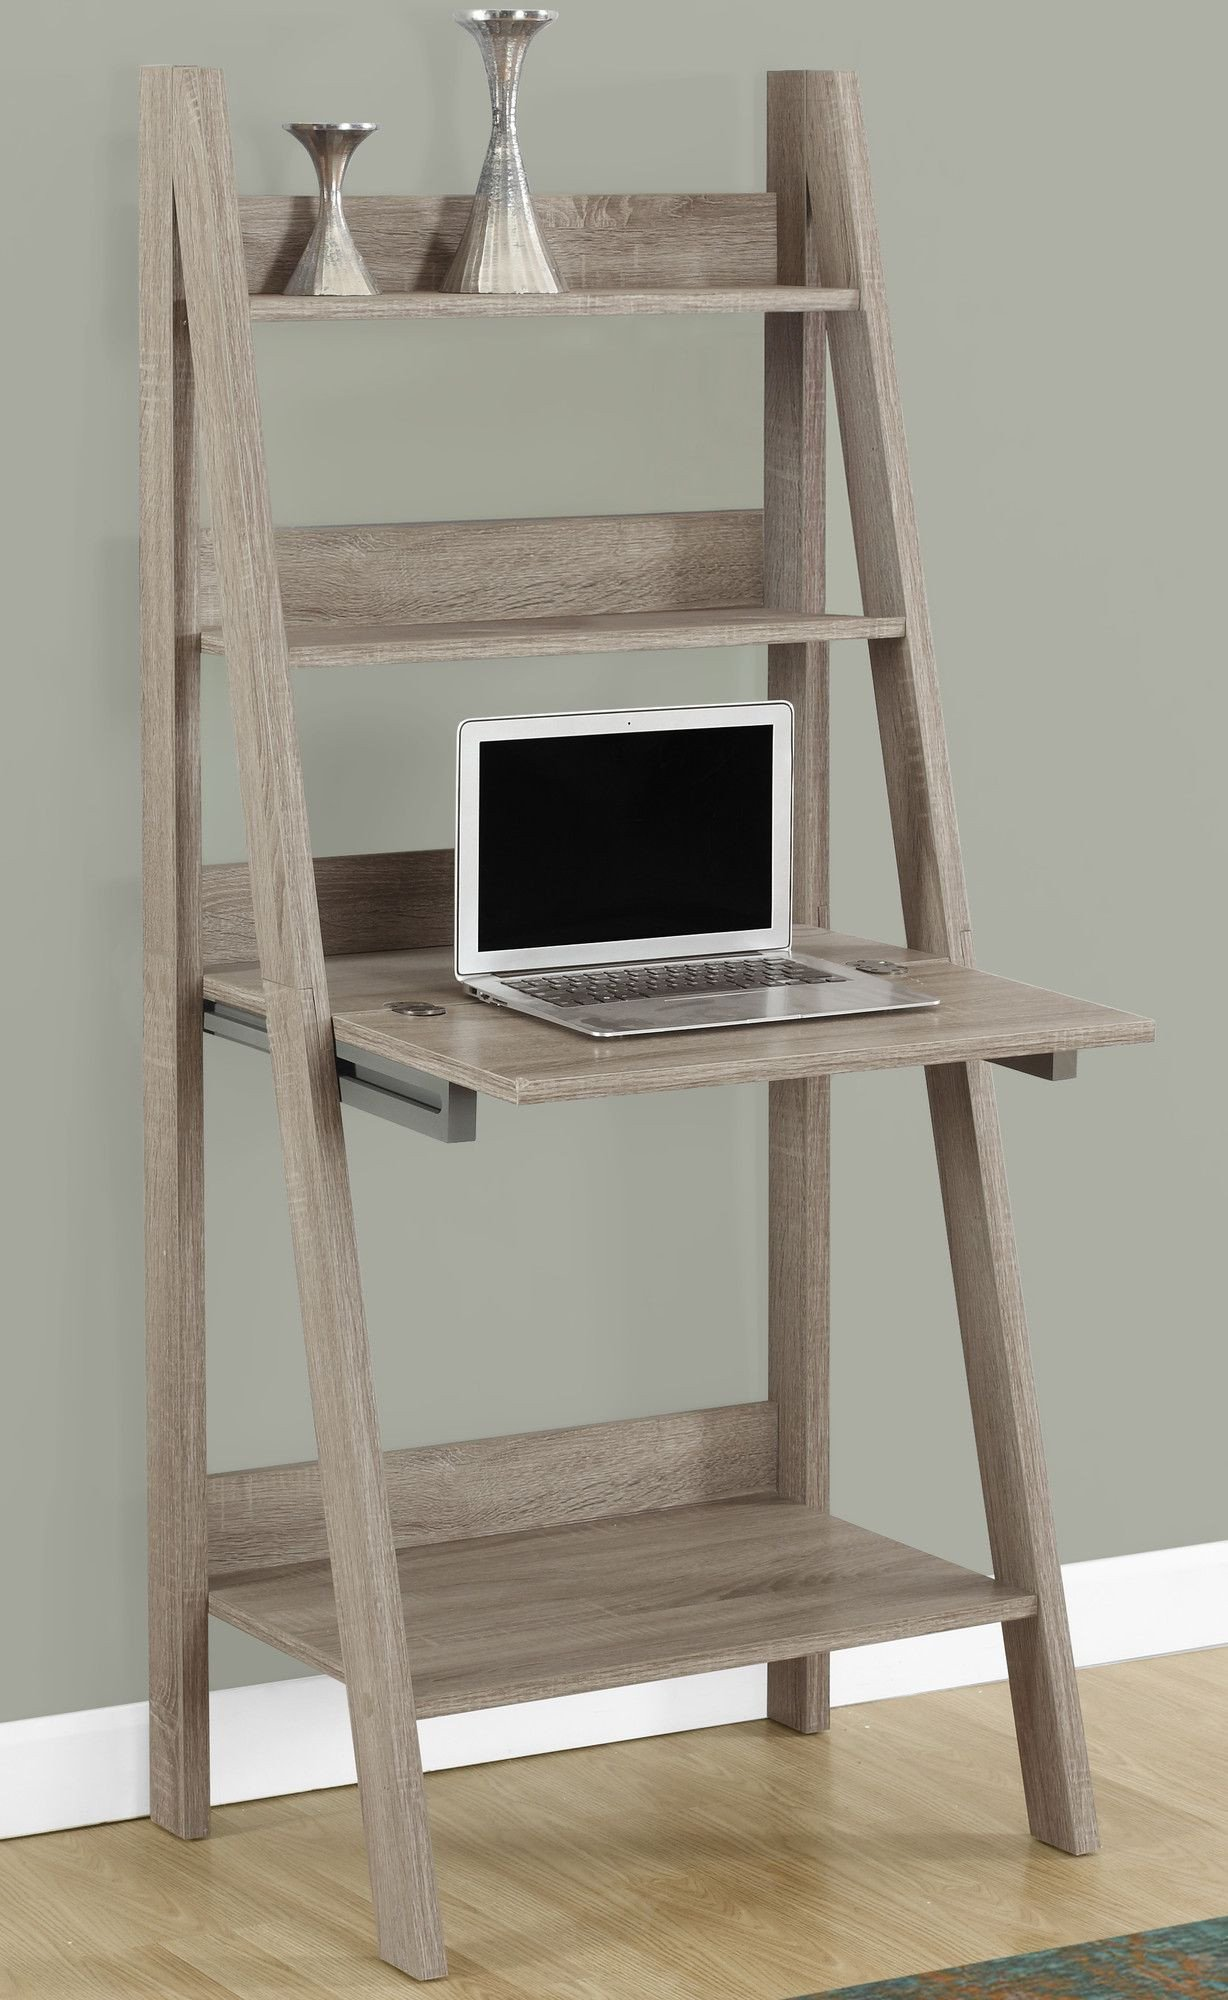 Computer Desk for Small Bedroom Luxury Shelby Leaning Ladder Desk